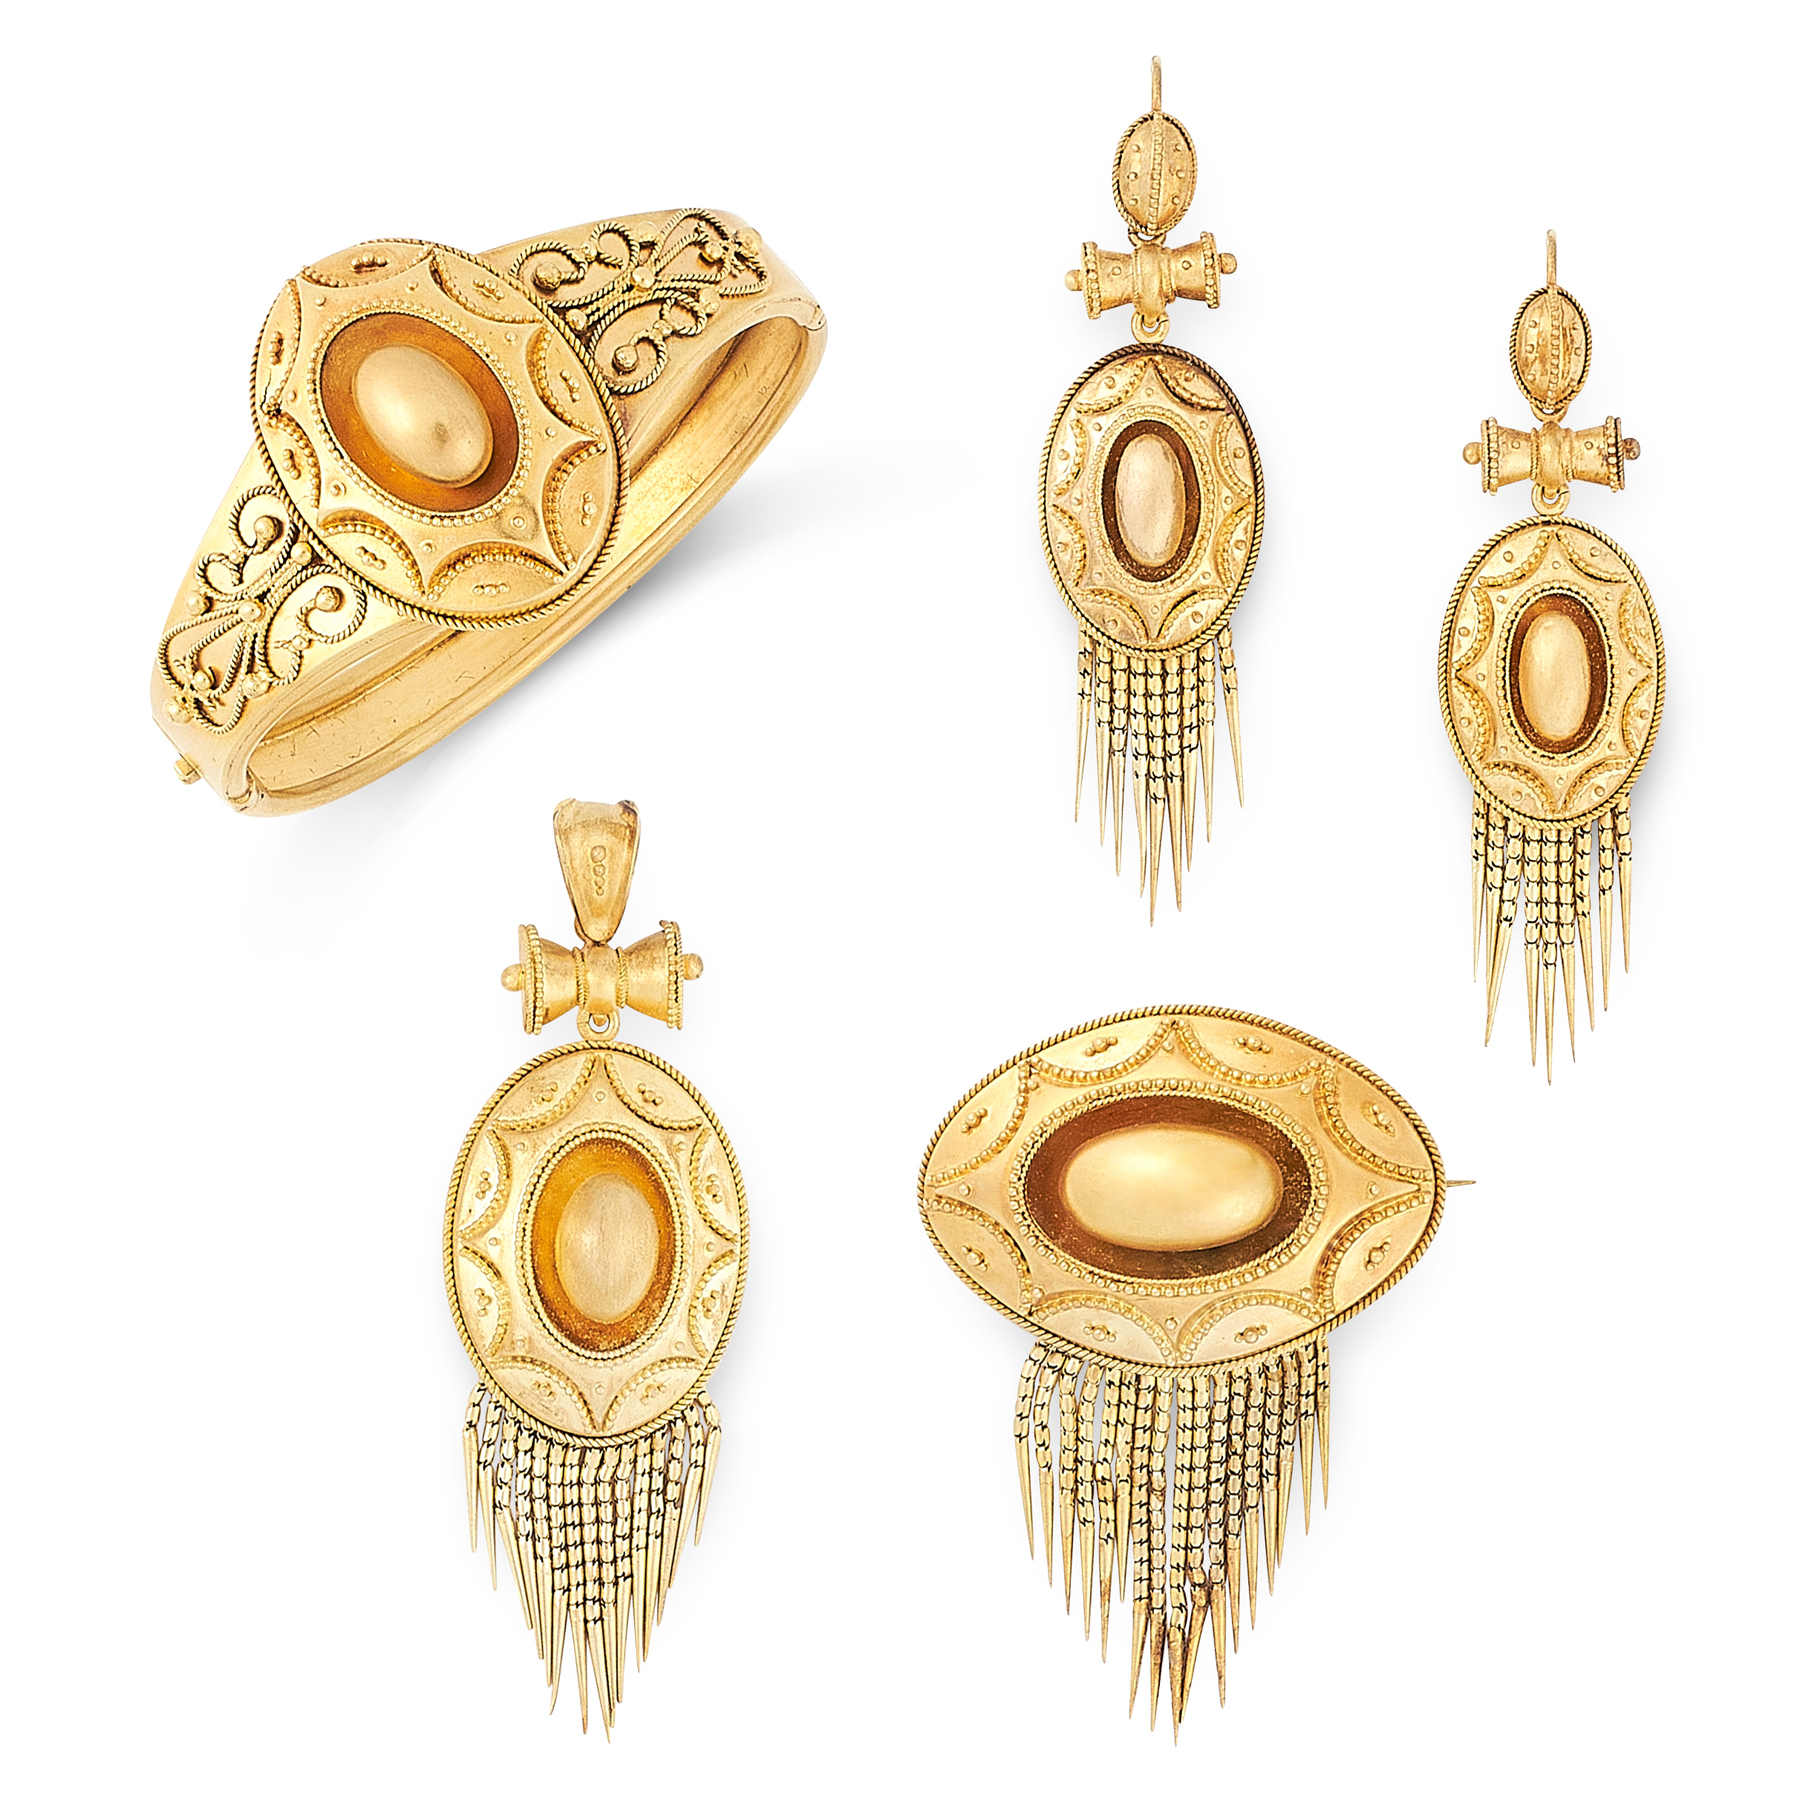 AN ANTIQUE MOURNING BANGLE, BROOCH, PENDANT AND EARRINGS SUITE, 19TH CENTURY in yellow gold, - Image 2 of 2